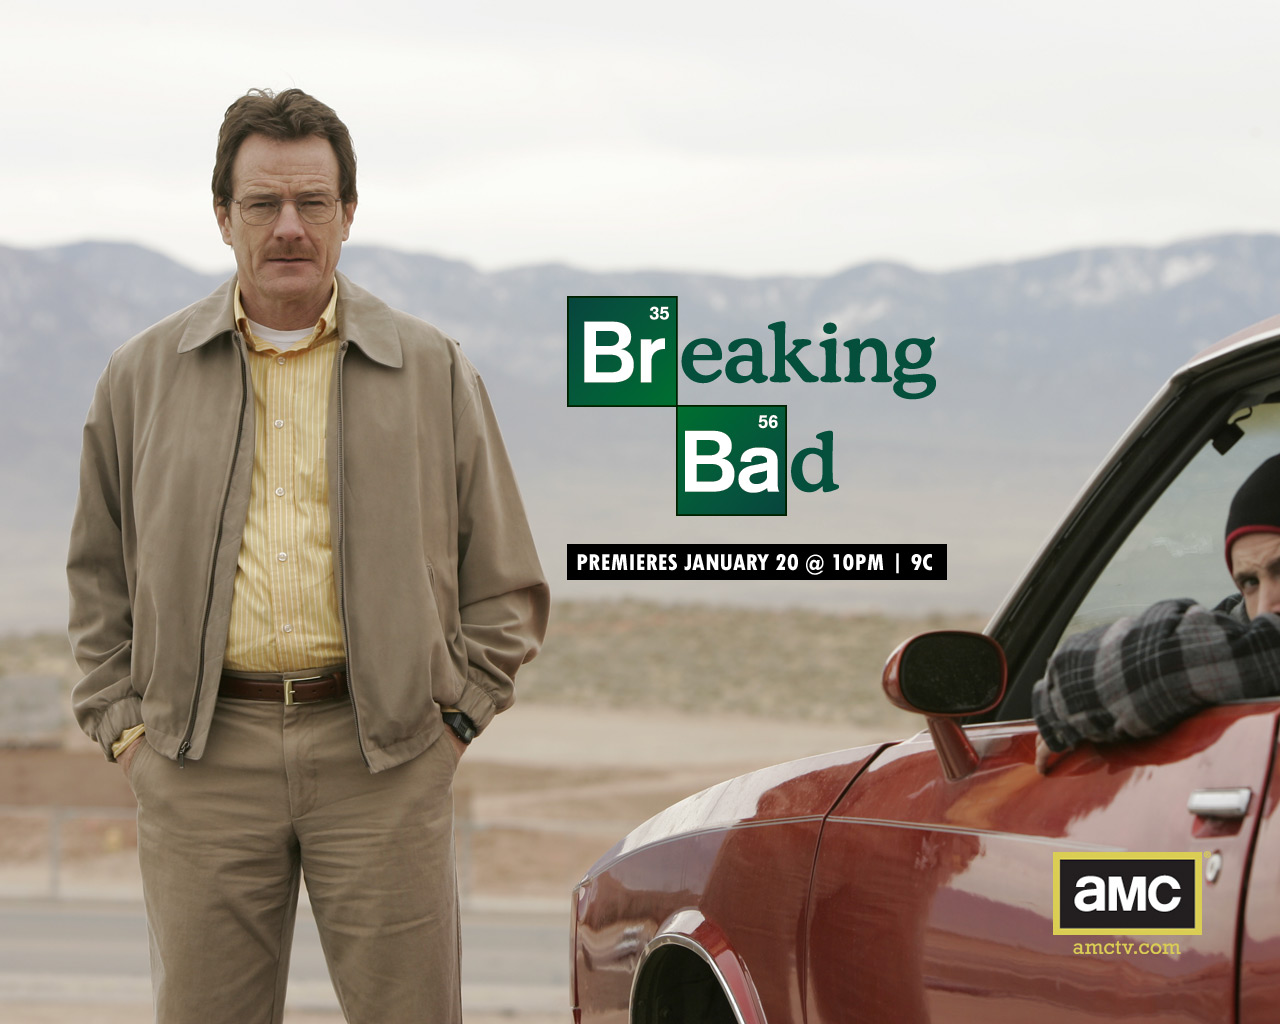 Bad Serie Lo Q Veo Breaking Bad Serie